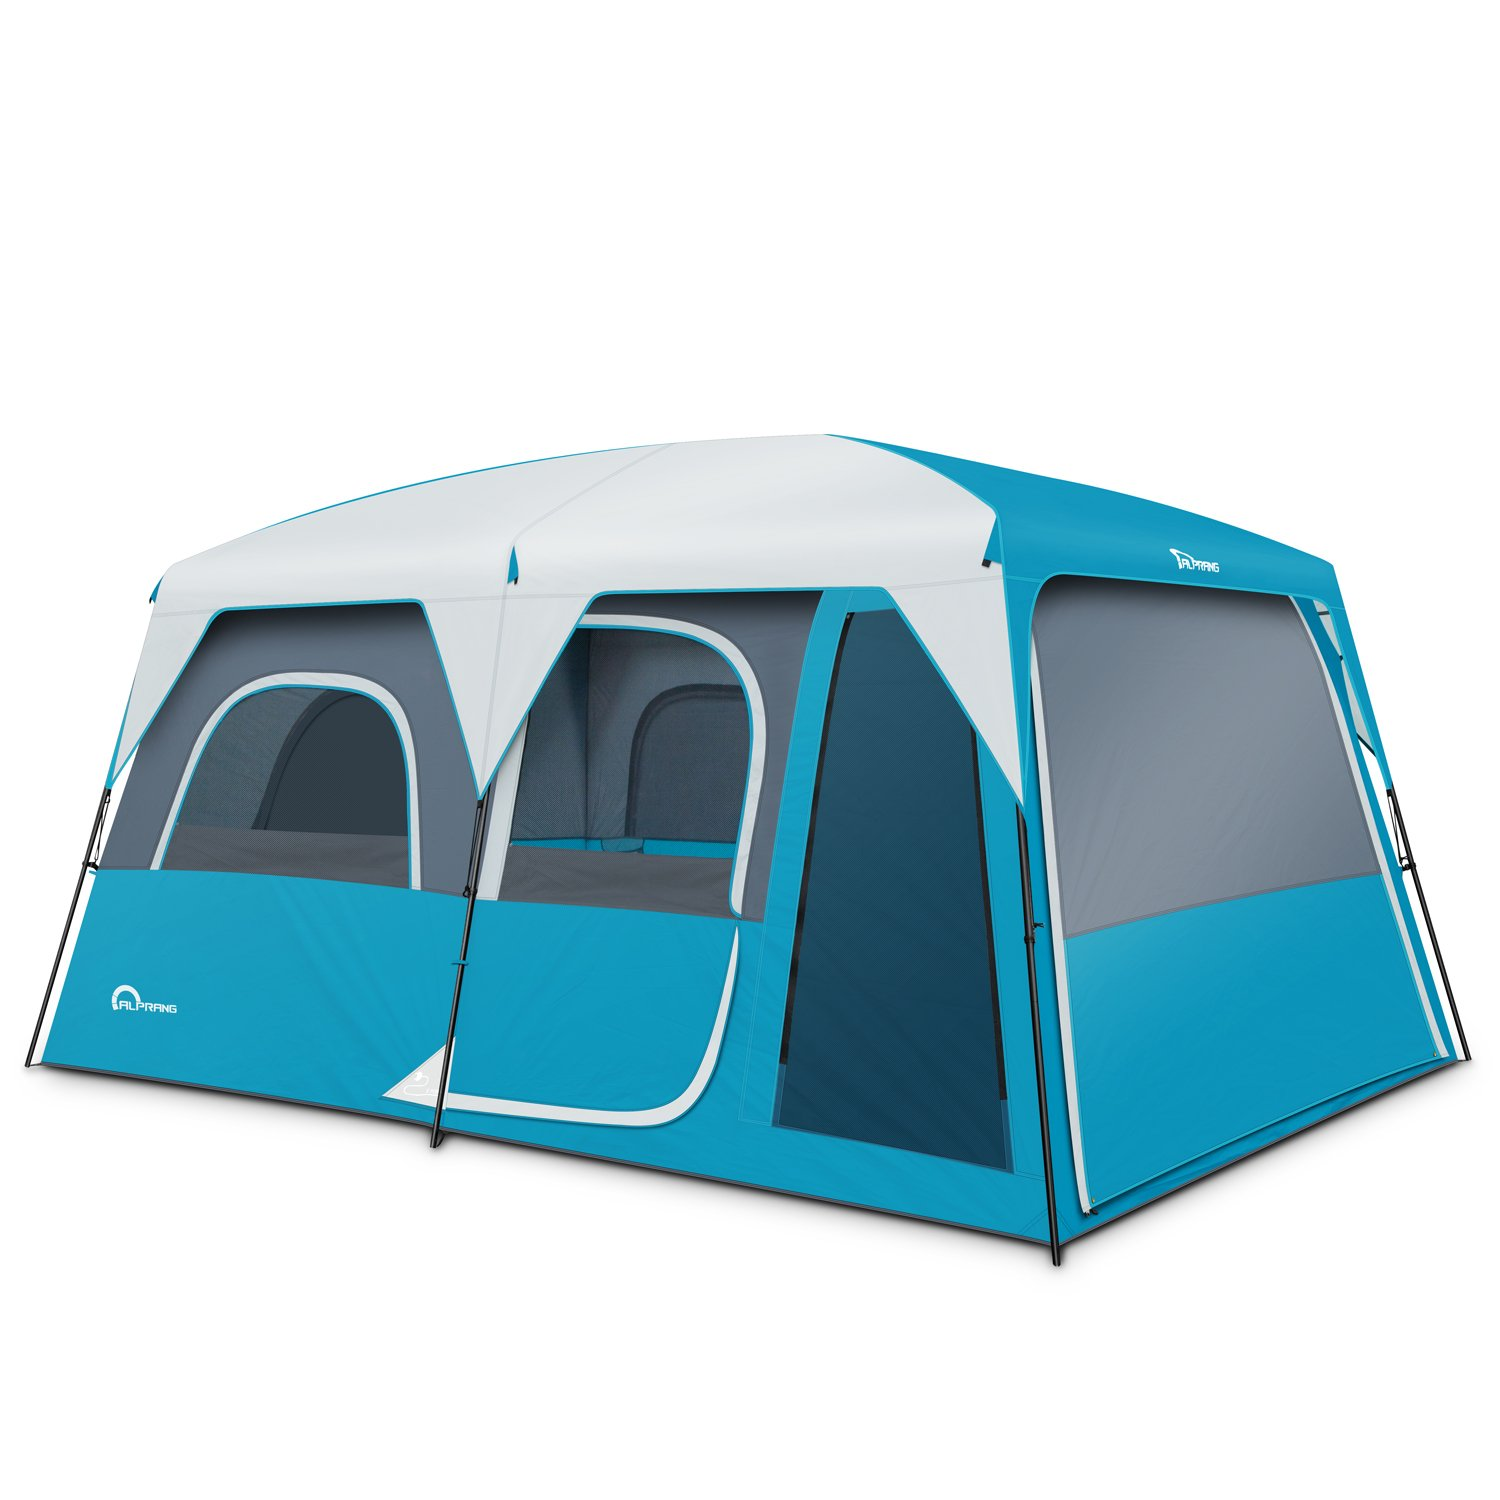 Alprang Family Camping Tent - Easy to Setup, Spacious, and Durable - 9 Person Cabin Tent-Lets You Have Fun with All Your Special Ones